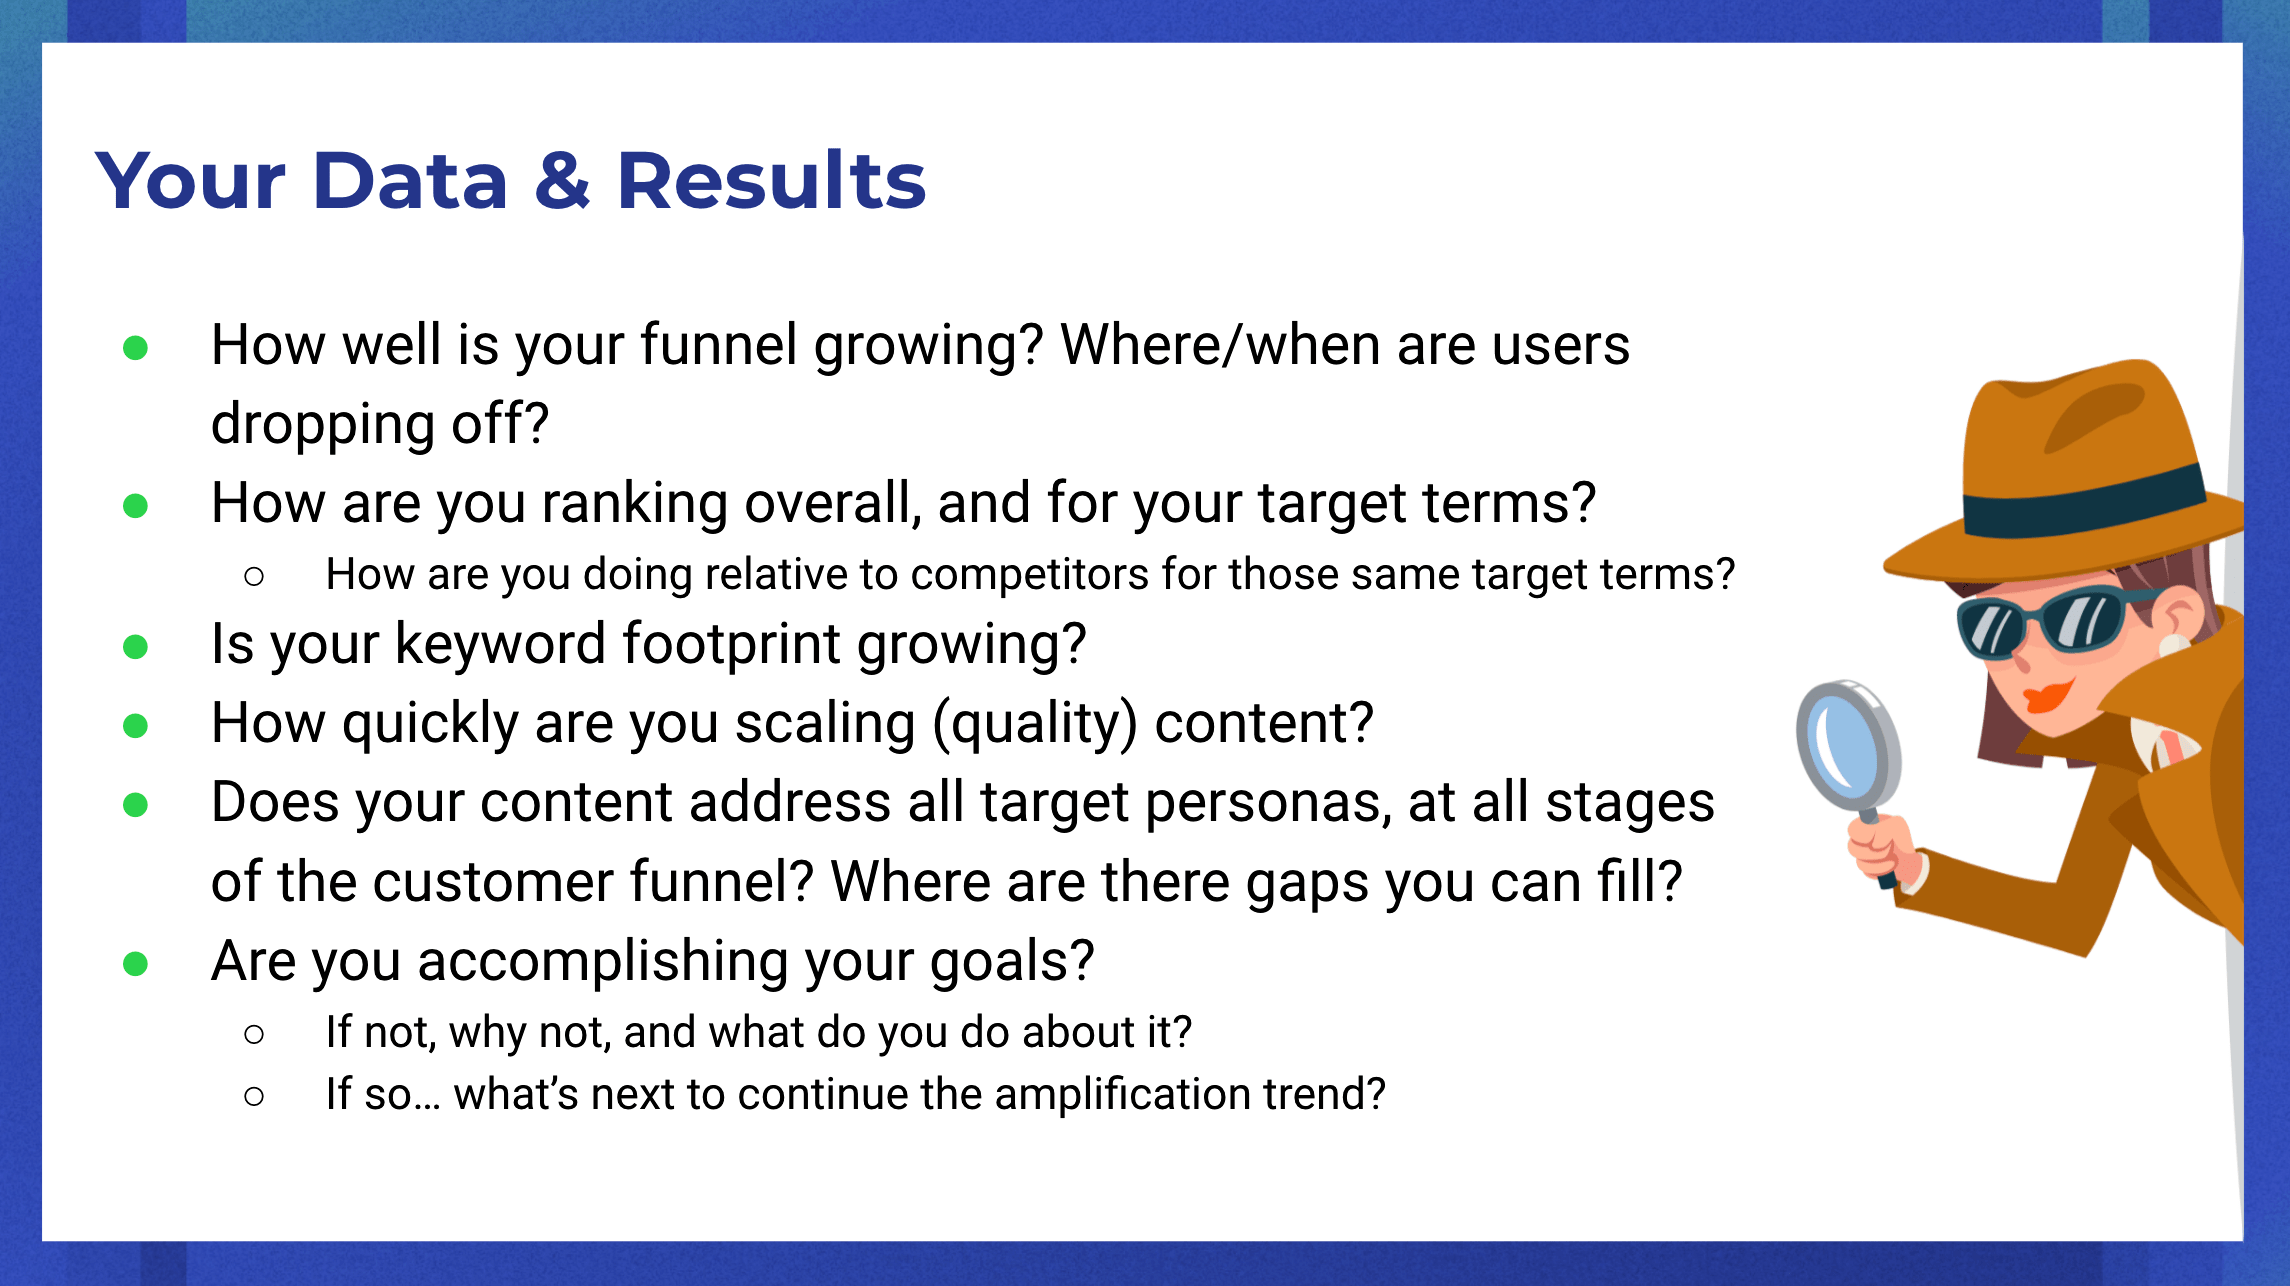 checklist for evaluating your SEO data and results